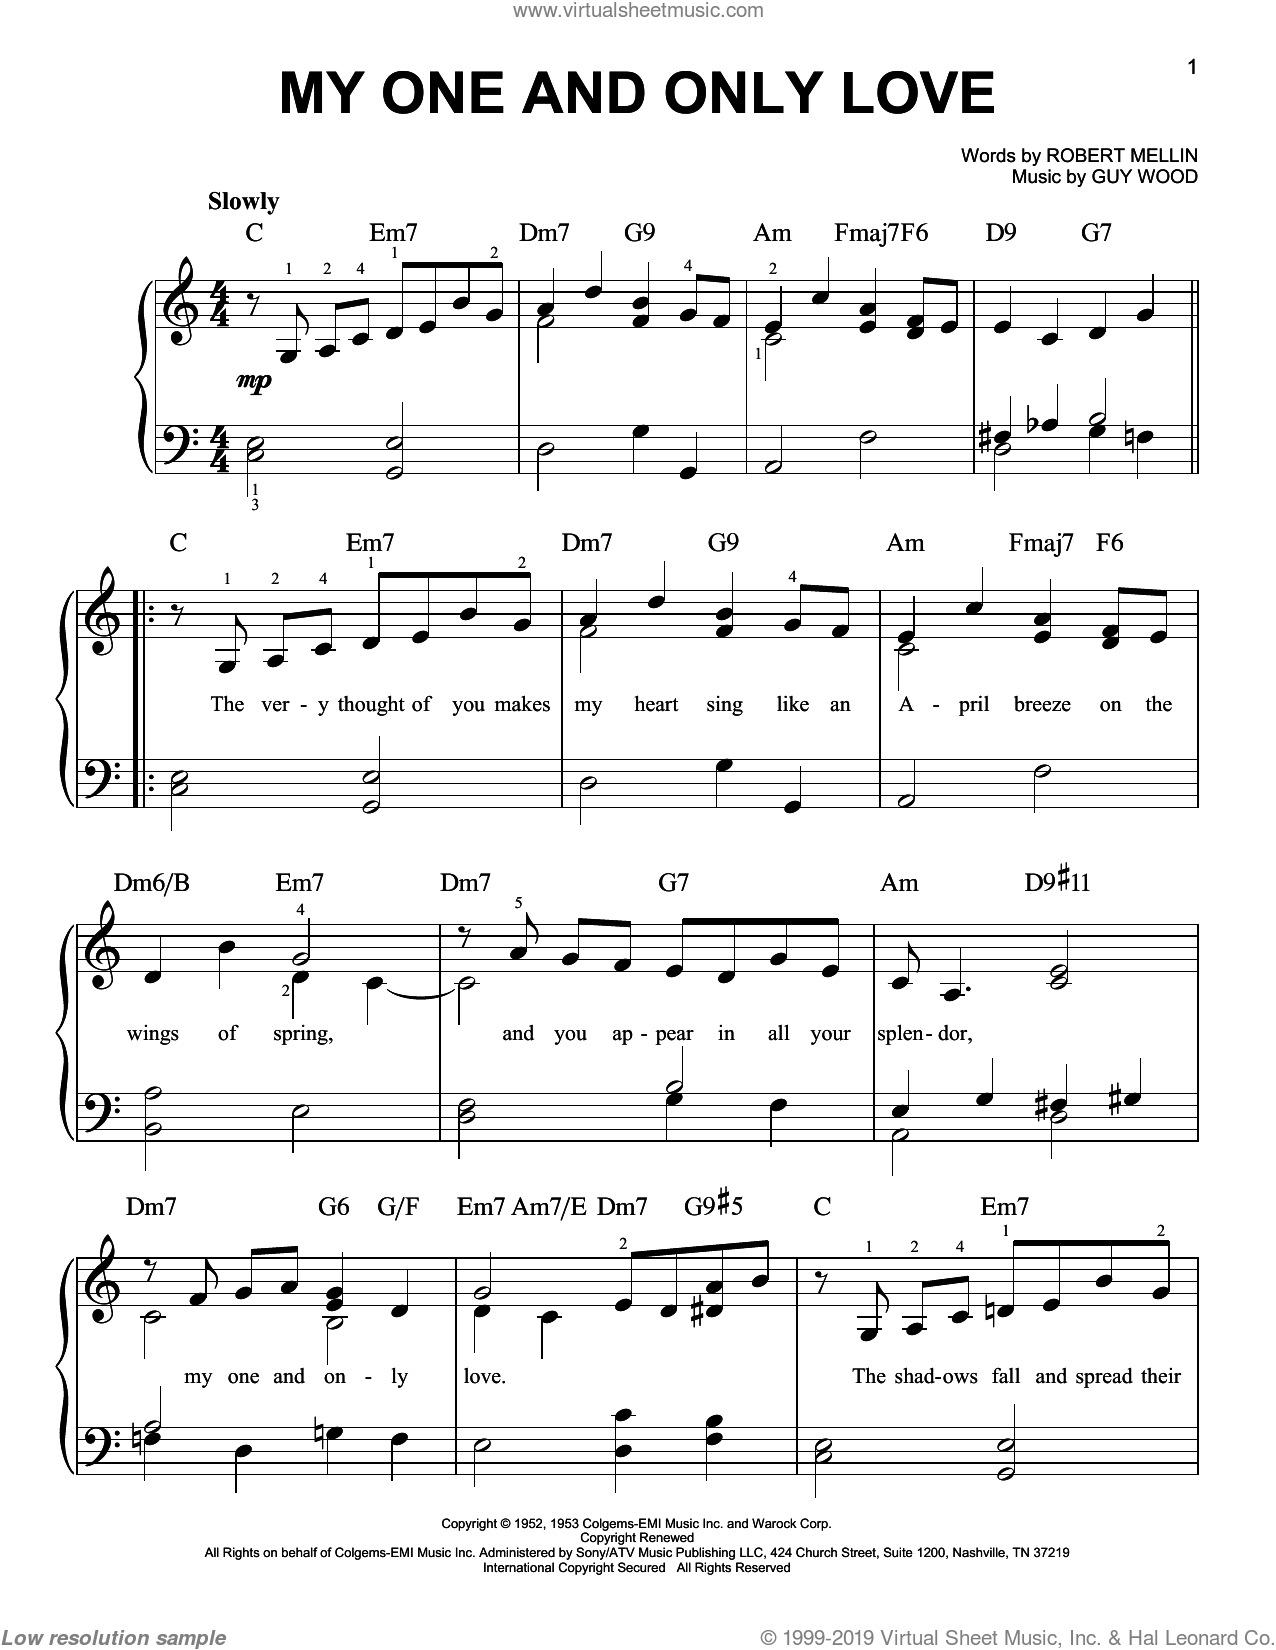 My One And Only Love, (easy) sheet music for piano solo by Louis Armstrong, Dean Martin, Frank Sinatra, John Coltrane, Sonny Rollins, Guy Wood and Robert Mellin, wedding score, easy skill level